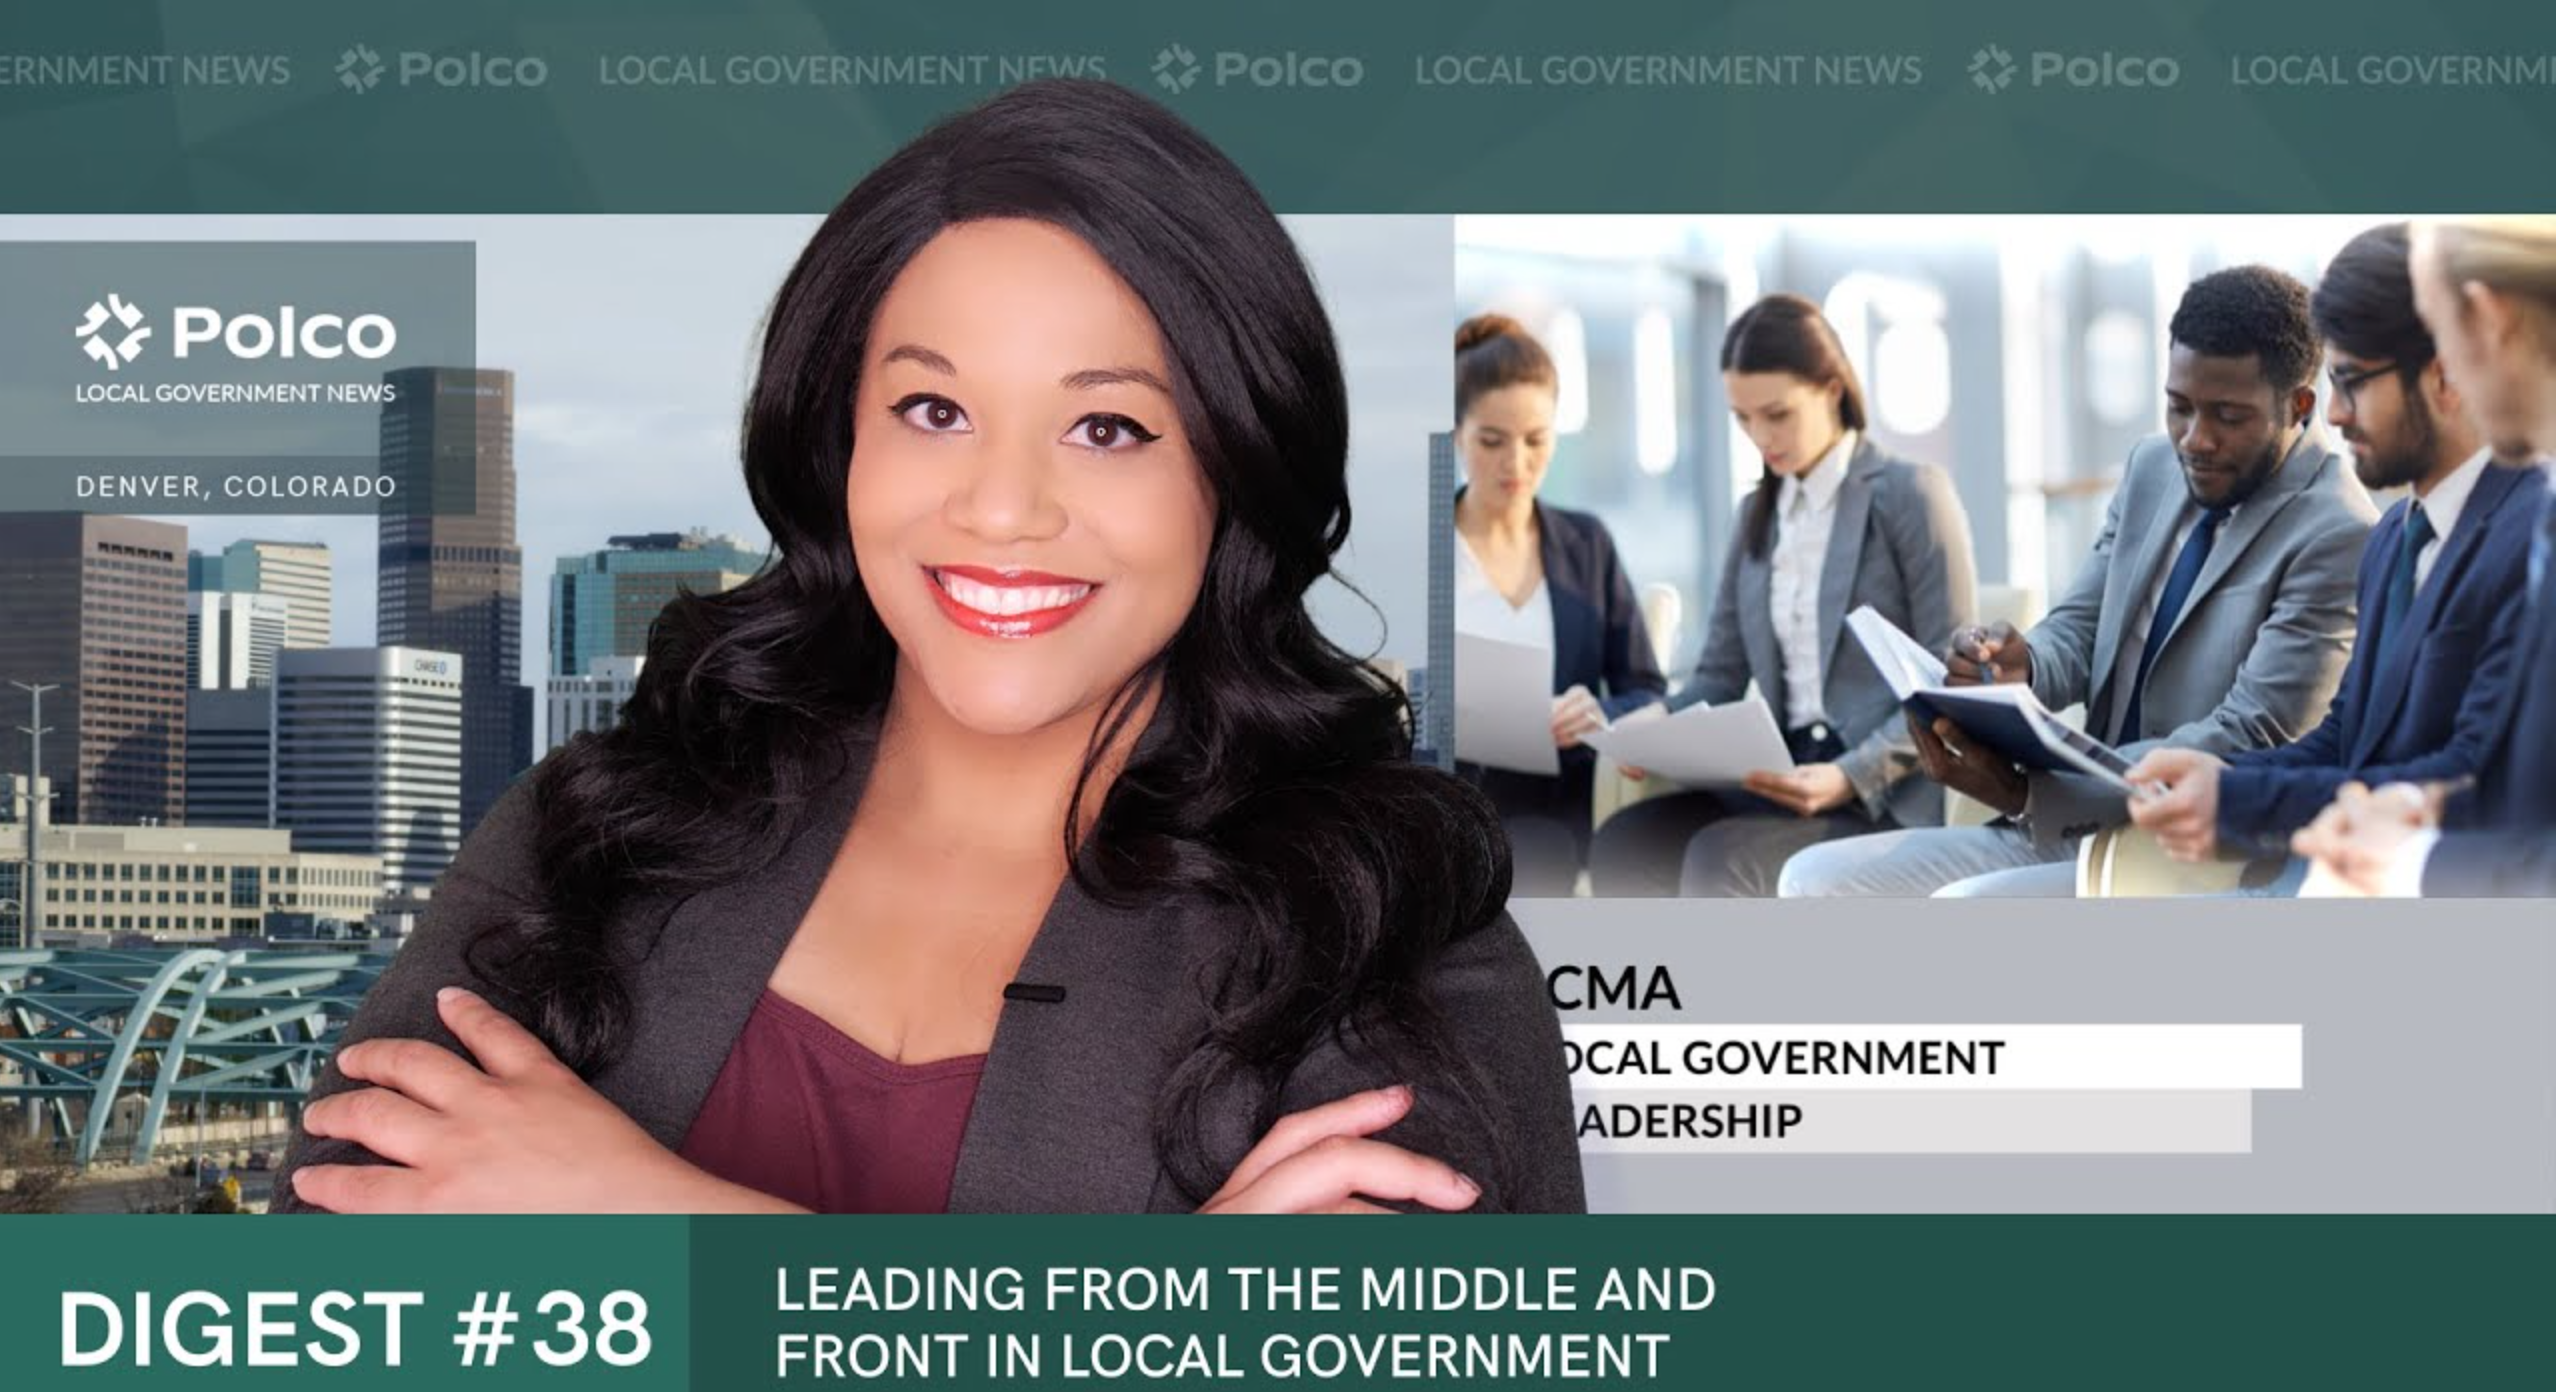 Leading From the Front and Middle of Local Government